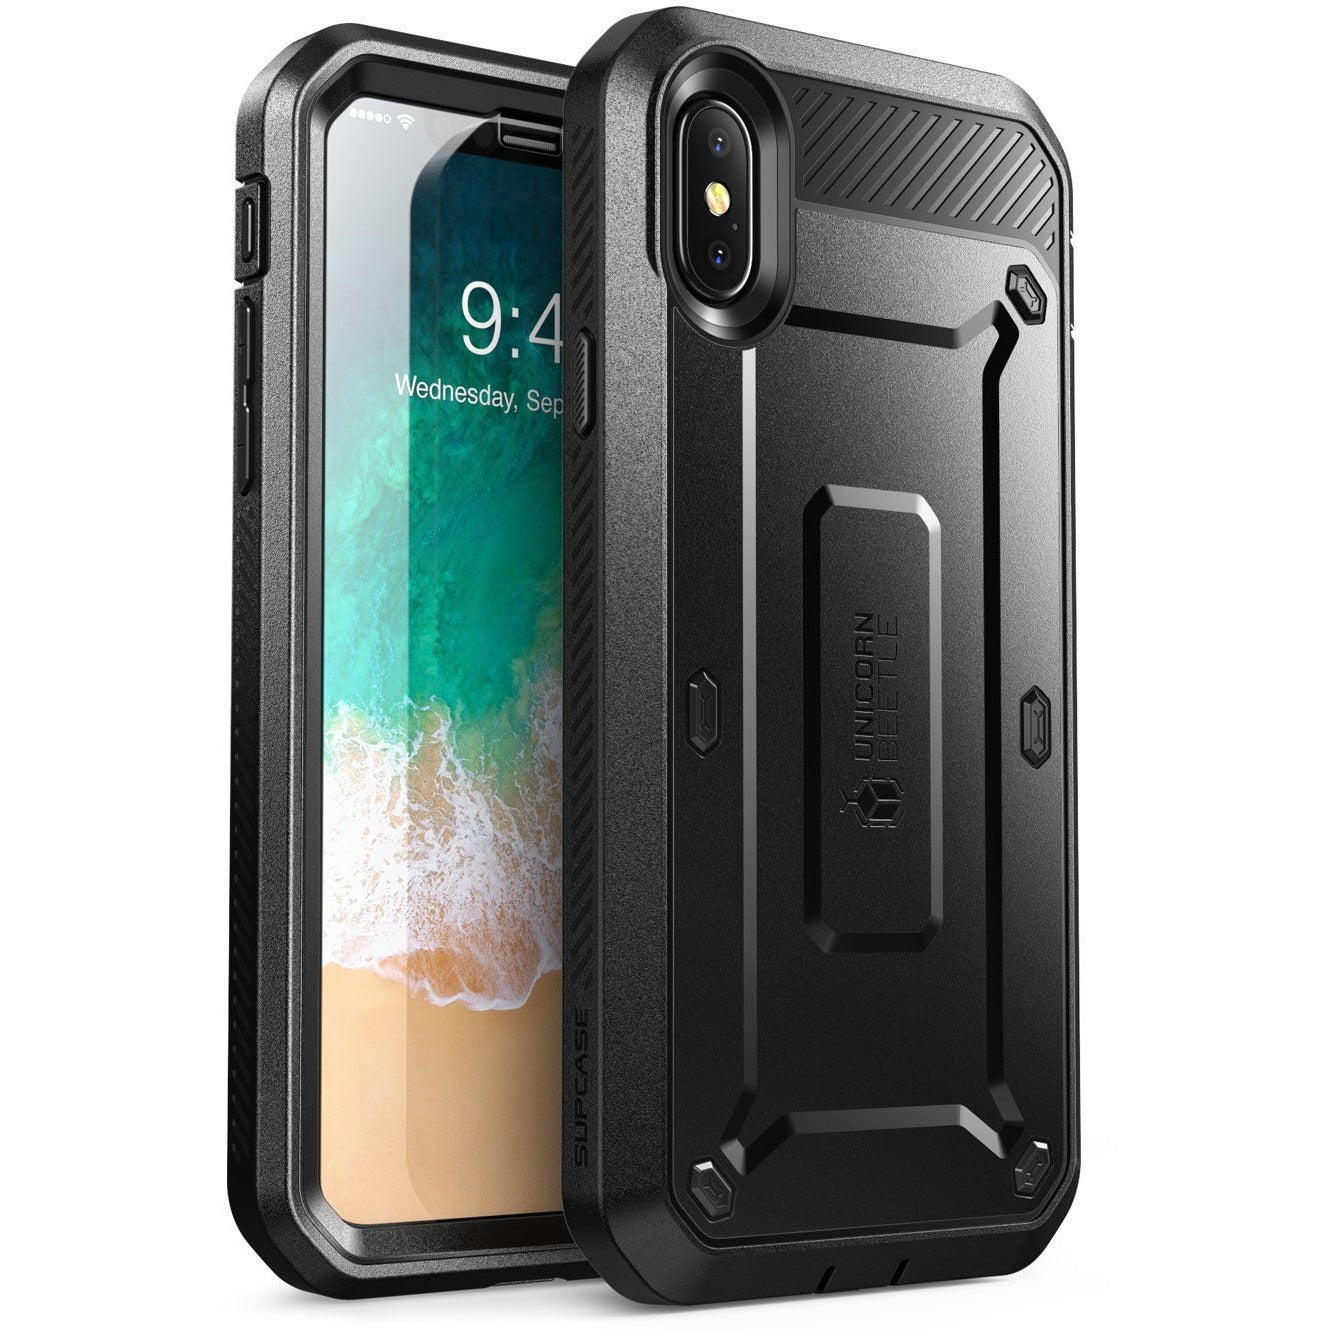 Supcase iPhone Xs,  iPhone X Case, Full-body Rugged Holster Case with Built-in Screen Protector Unicorn Beetle PRO Series